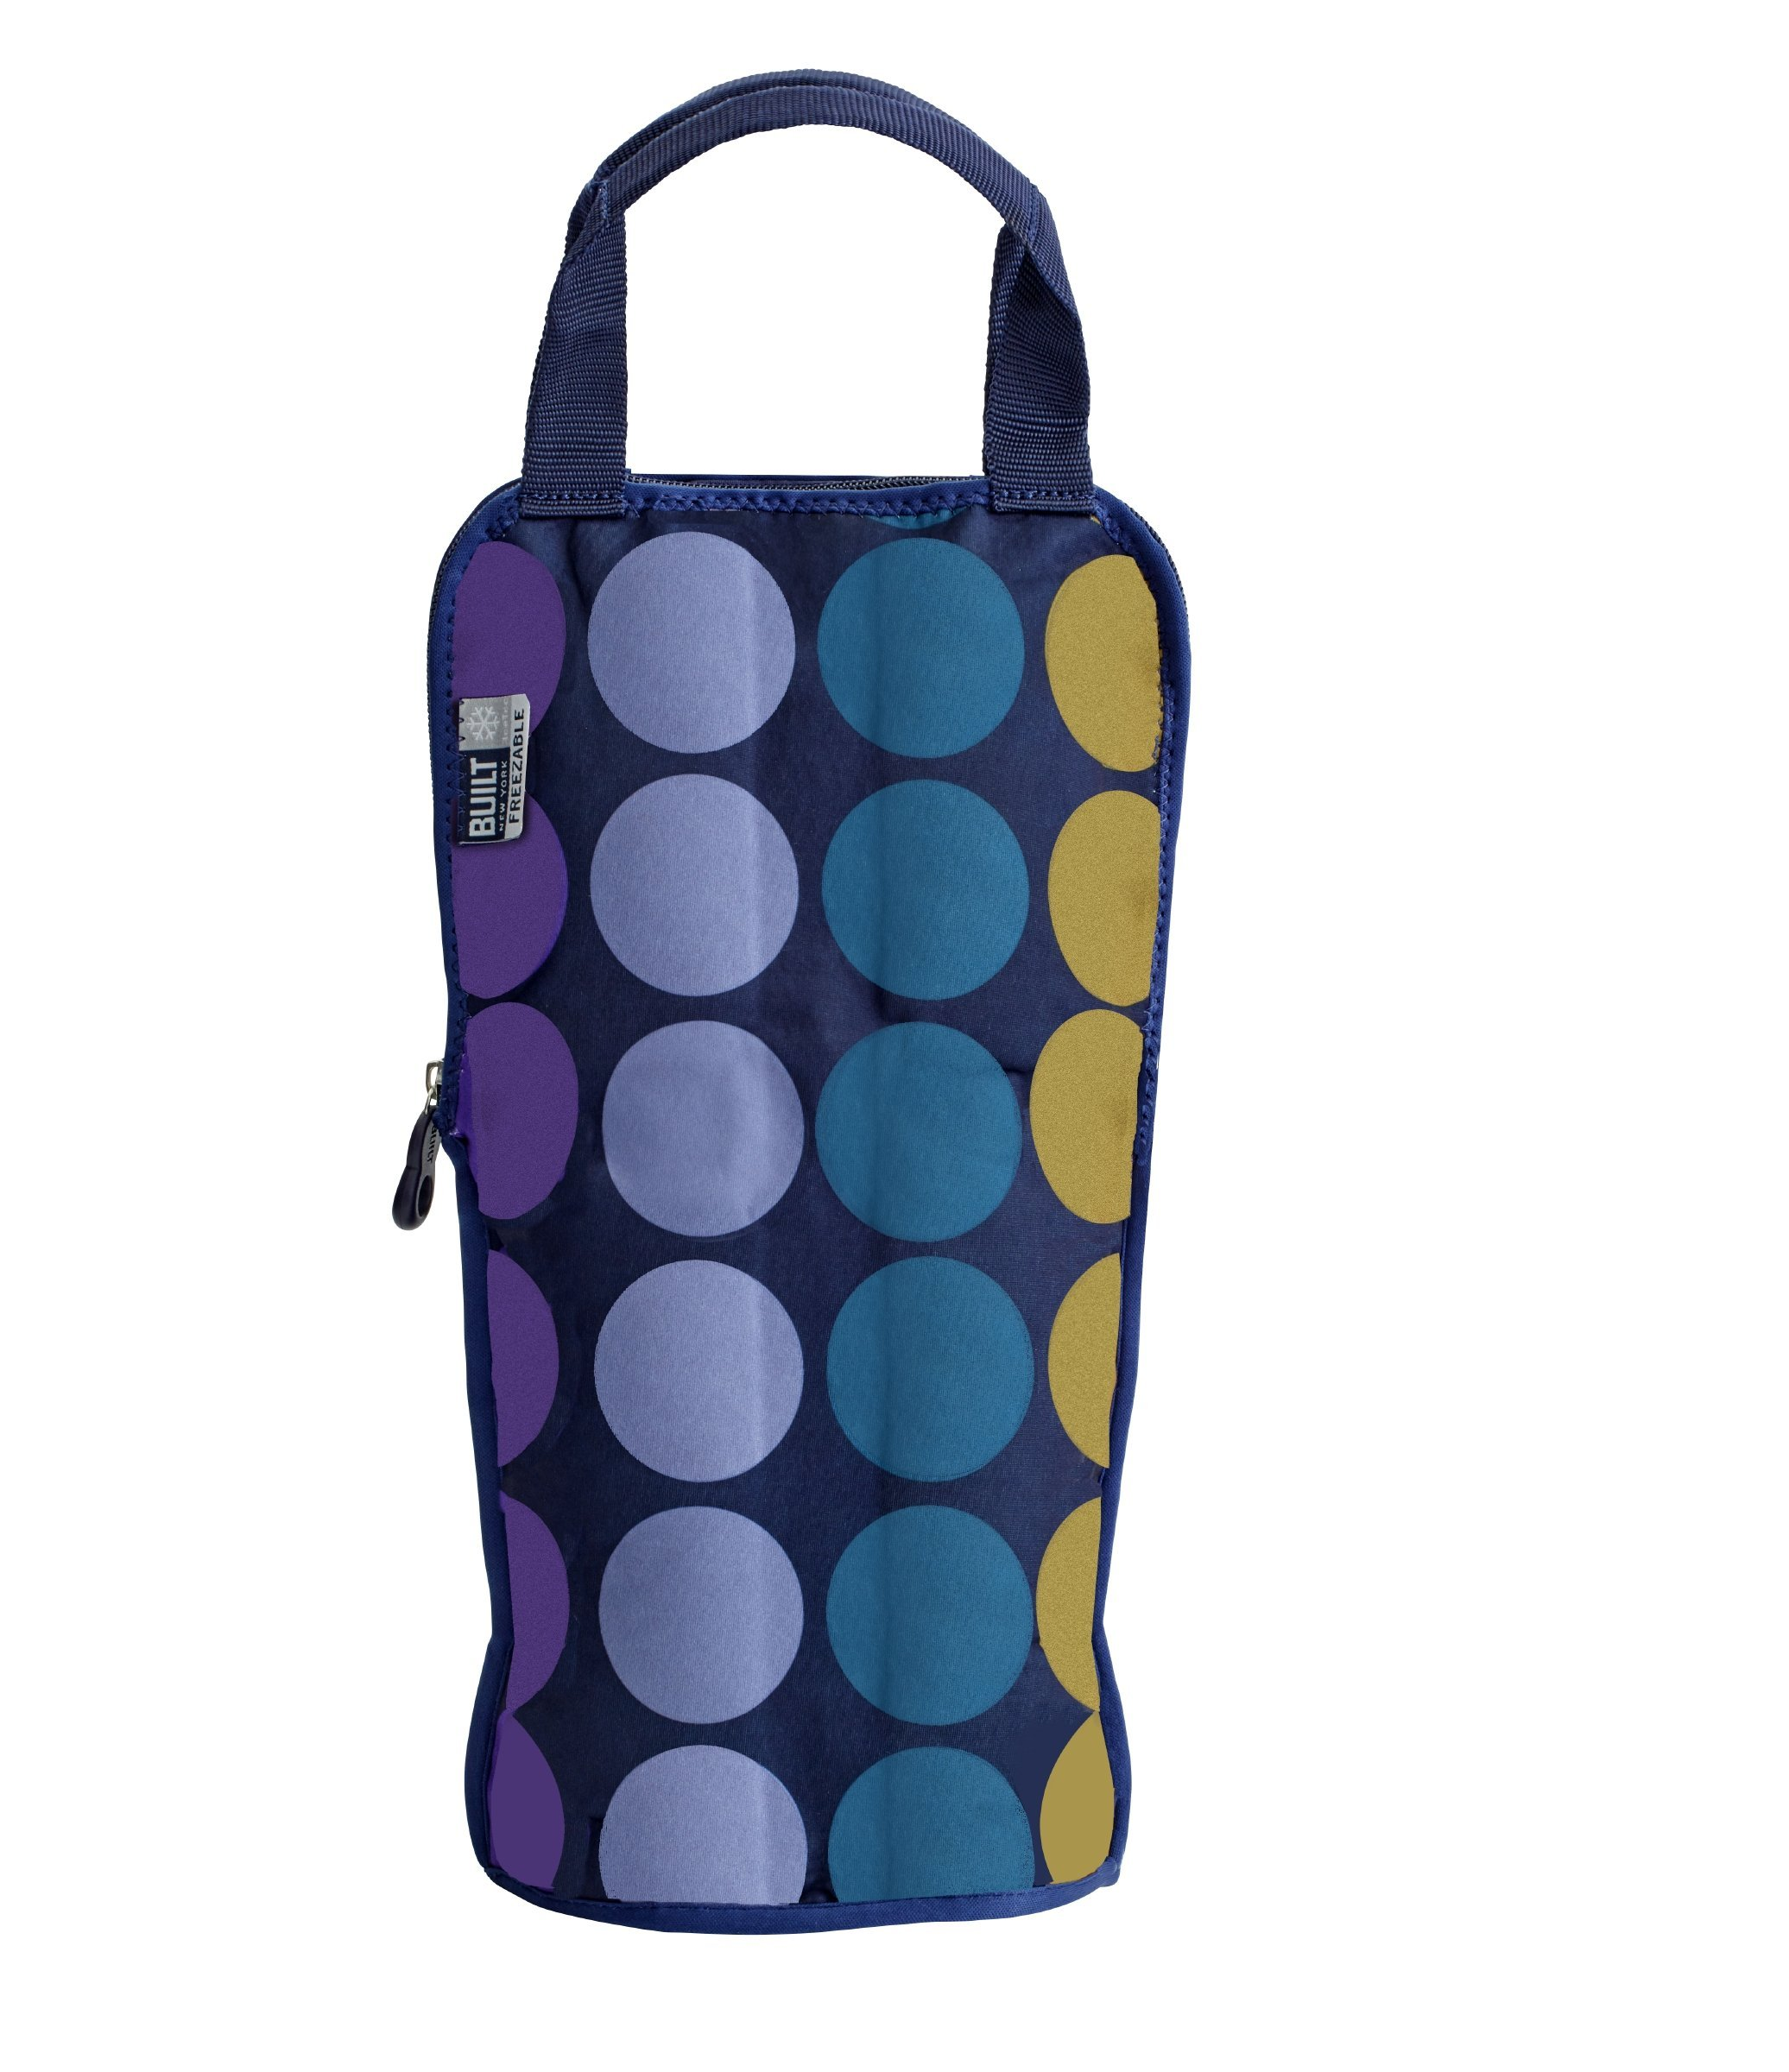 Built 5178239 NY IceTec Freezable Wine and Champagne Chiller Bag, Plum Dot